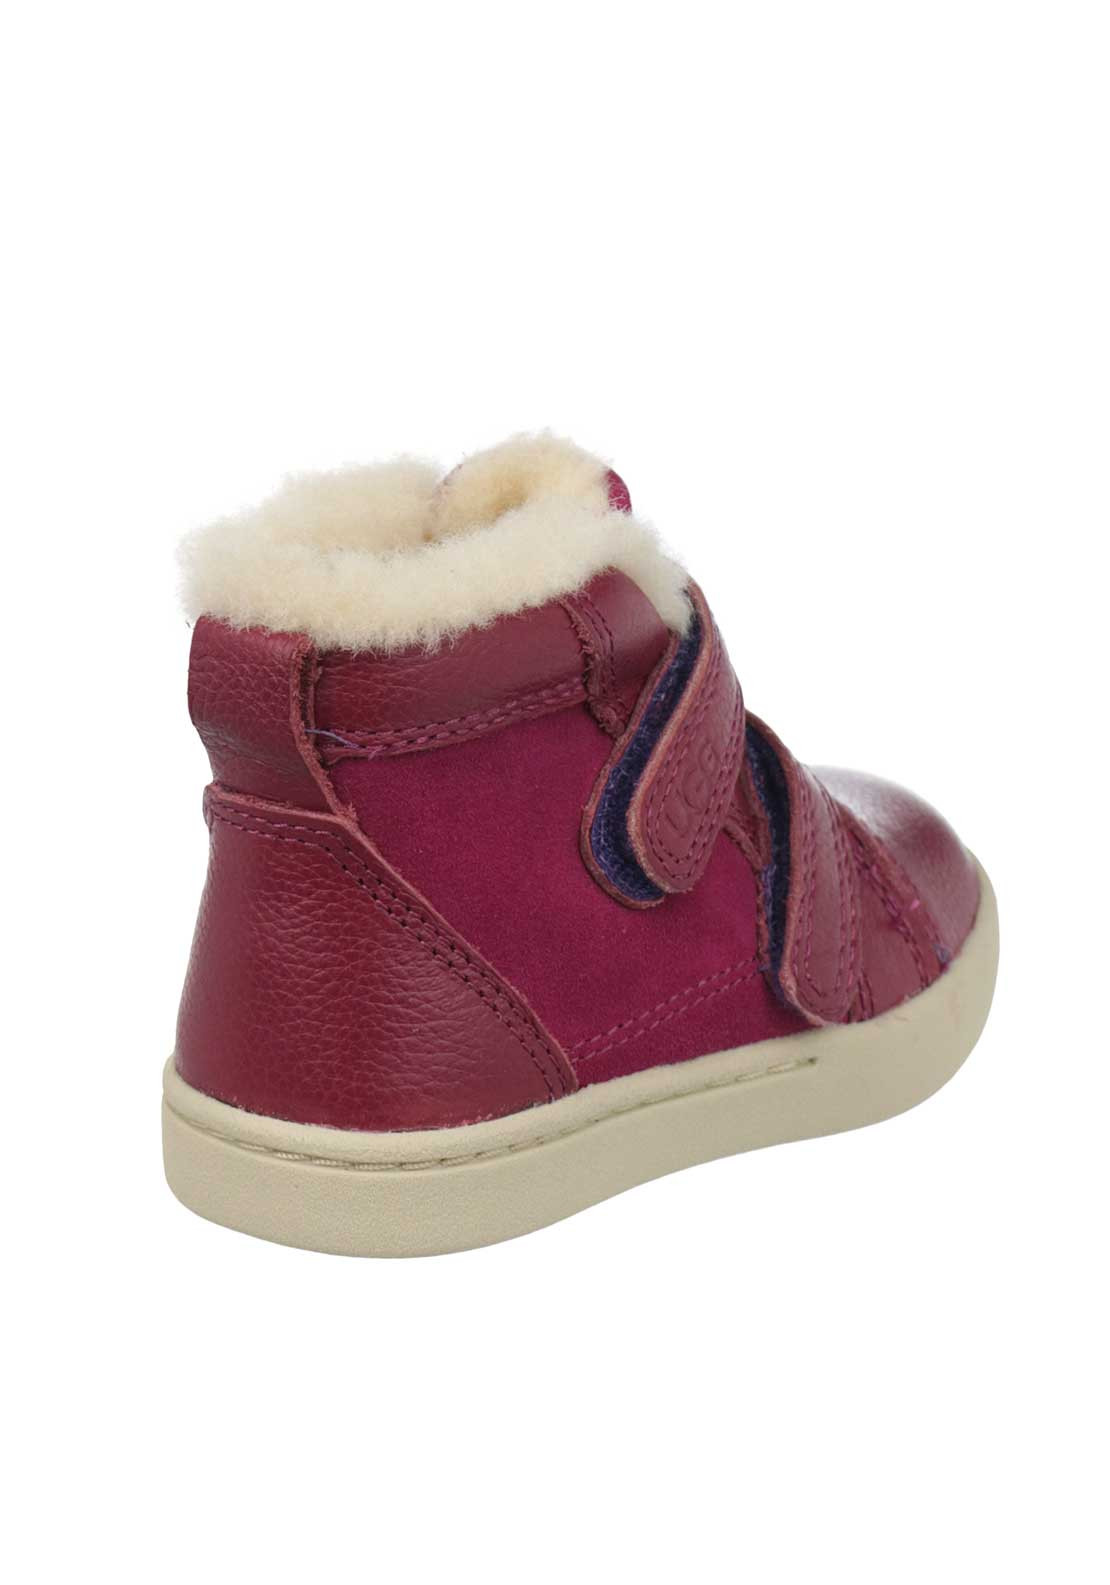 Ugg Australia Baby Girls Rennon Leather Velcro Strap Boots